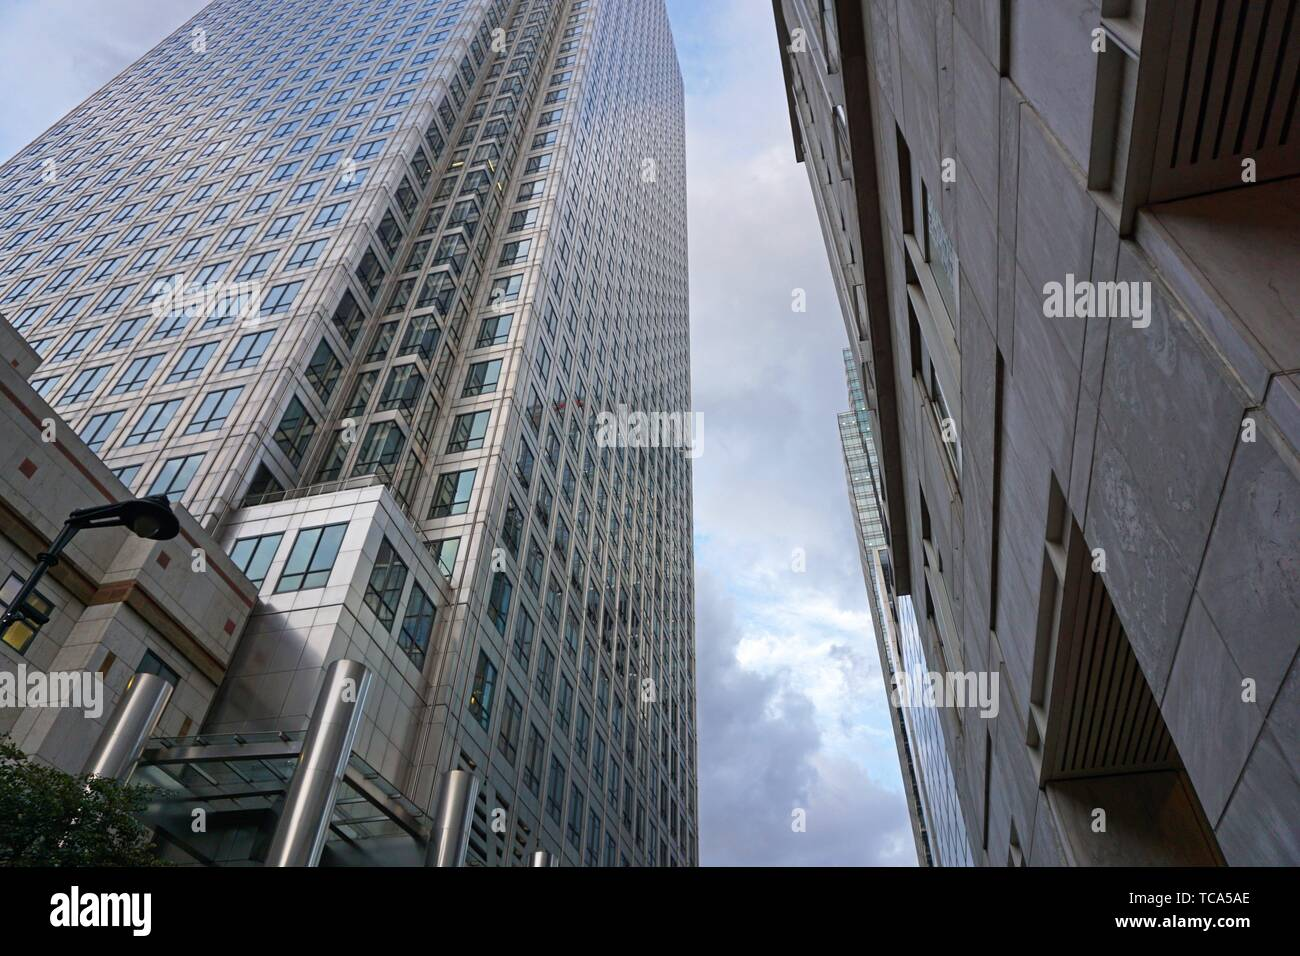 One Canada Square Building, Canary Wharf. London, England, Great Britain, Europe. - Stock Image